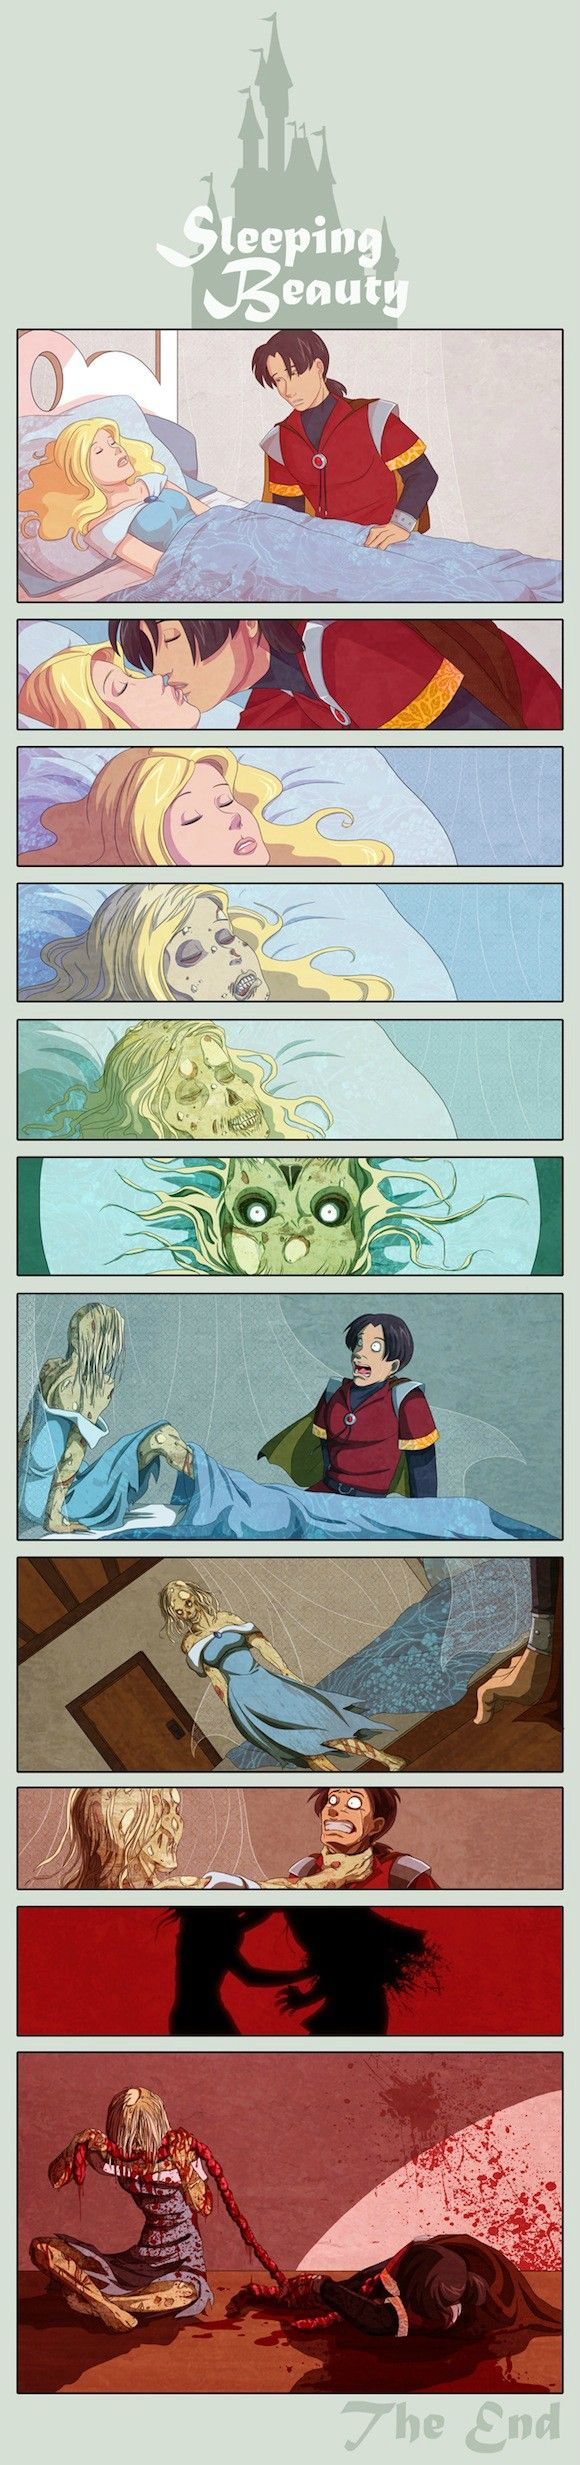 How Sleeping Beauty should have ended.